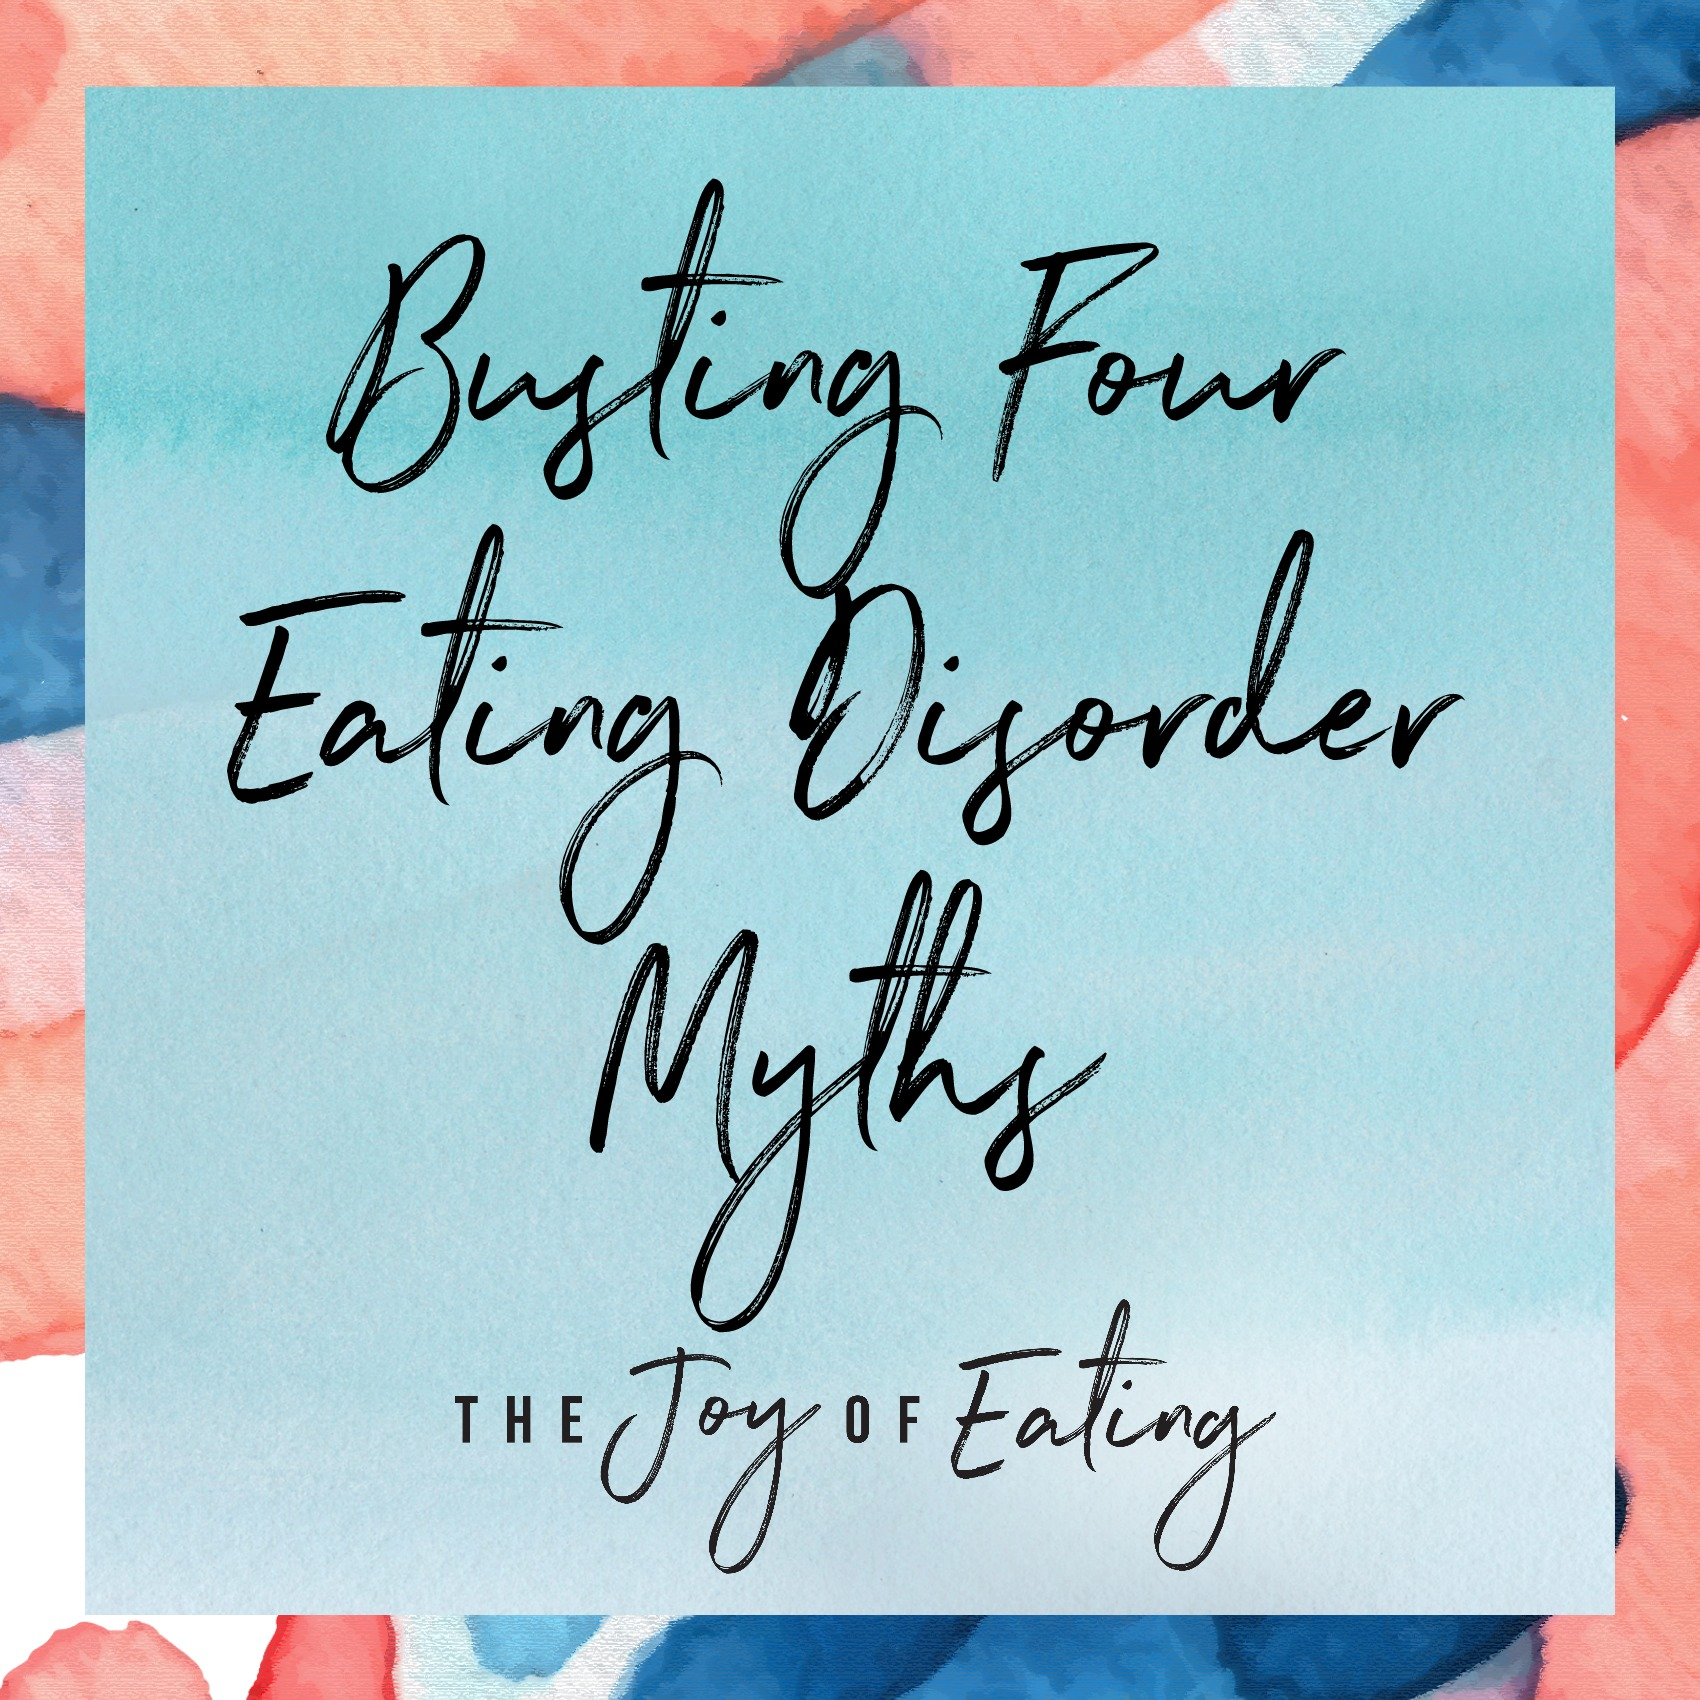 Busting four eating disorder myths for Eating Disorder Awareness Week. #intuitiveeating #EDrecovery #eatingdisorder